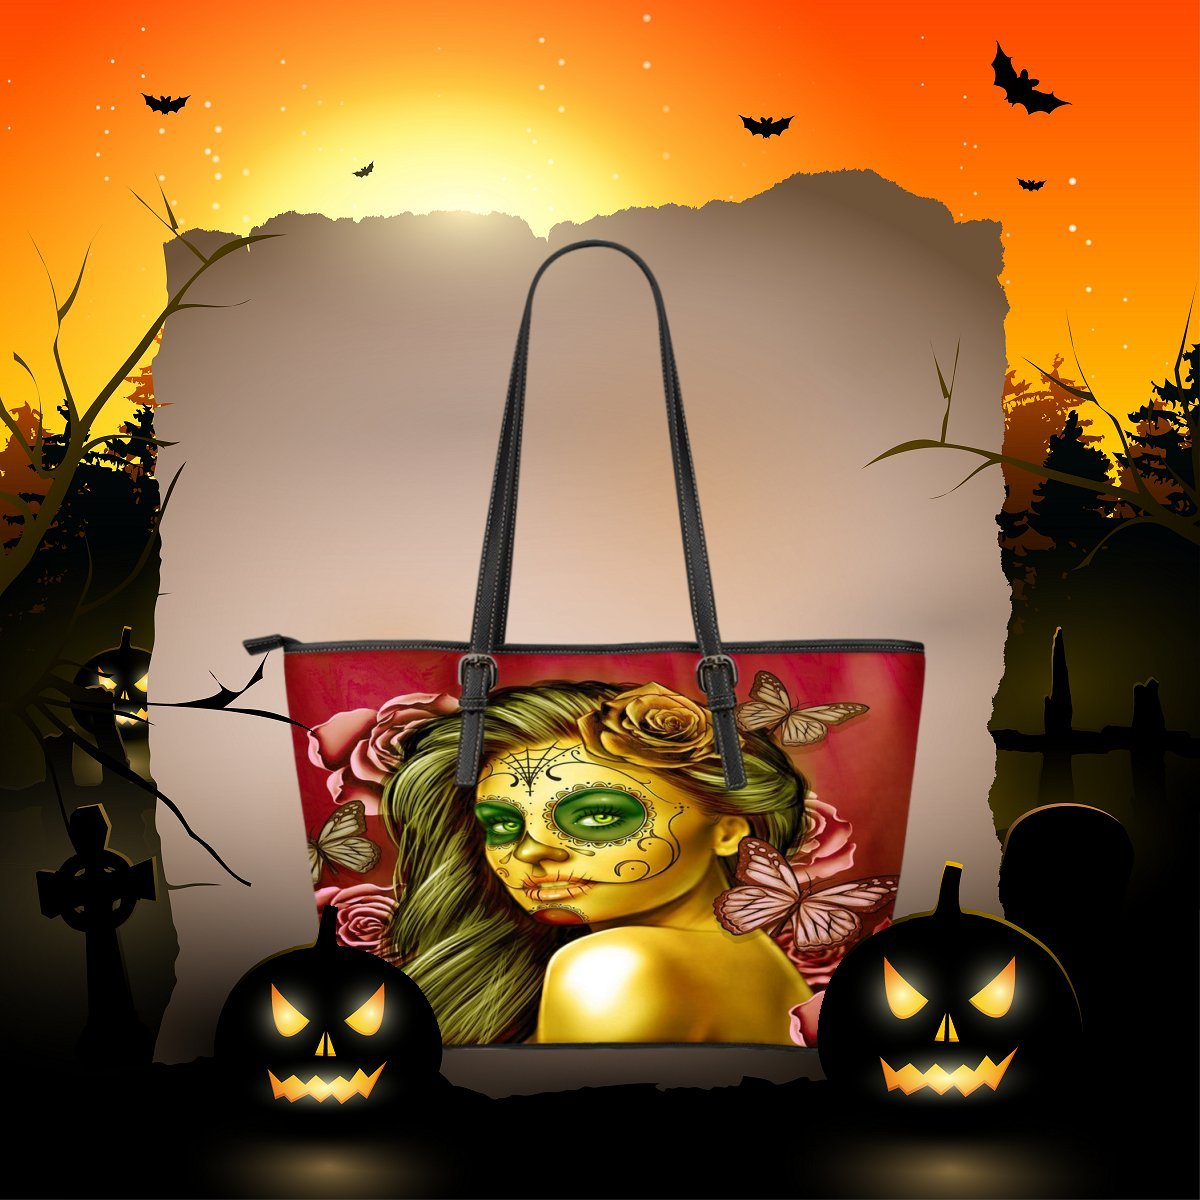 Amazon.com: DealioHound Calavera Design #2 Large Vegan PU Faux Leather Tote Bag (Yellow Smiley Face Rose): Shoes